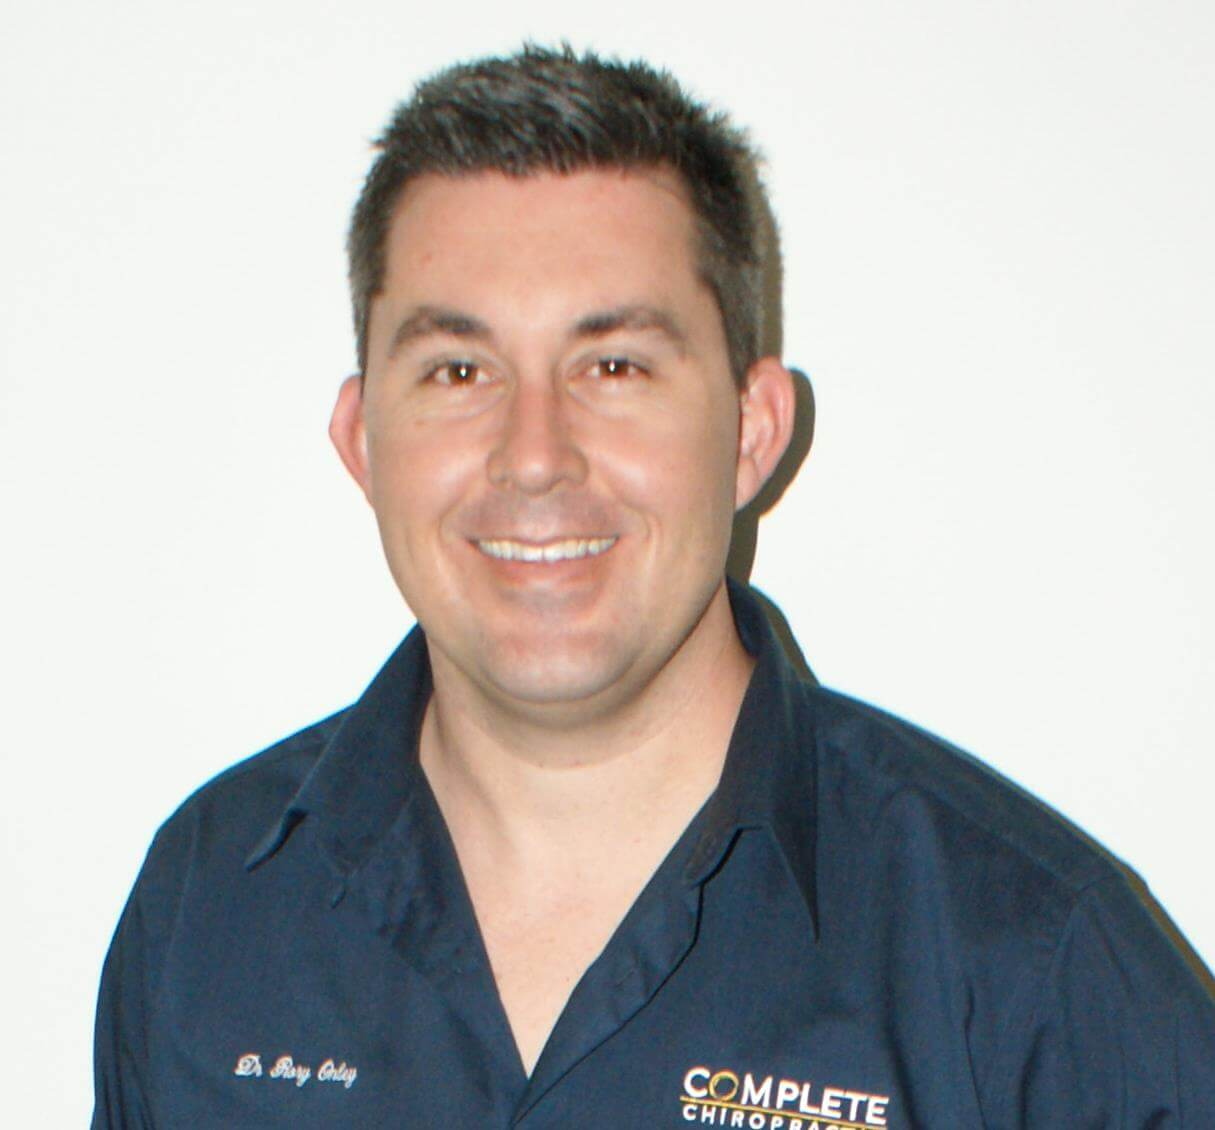 Chiropractor Adelaide - Rory Onley - Complete Chiropractic